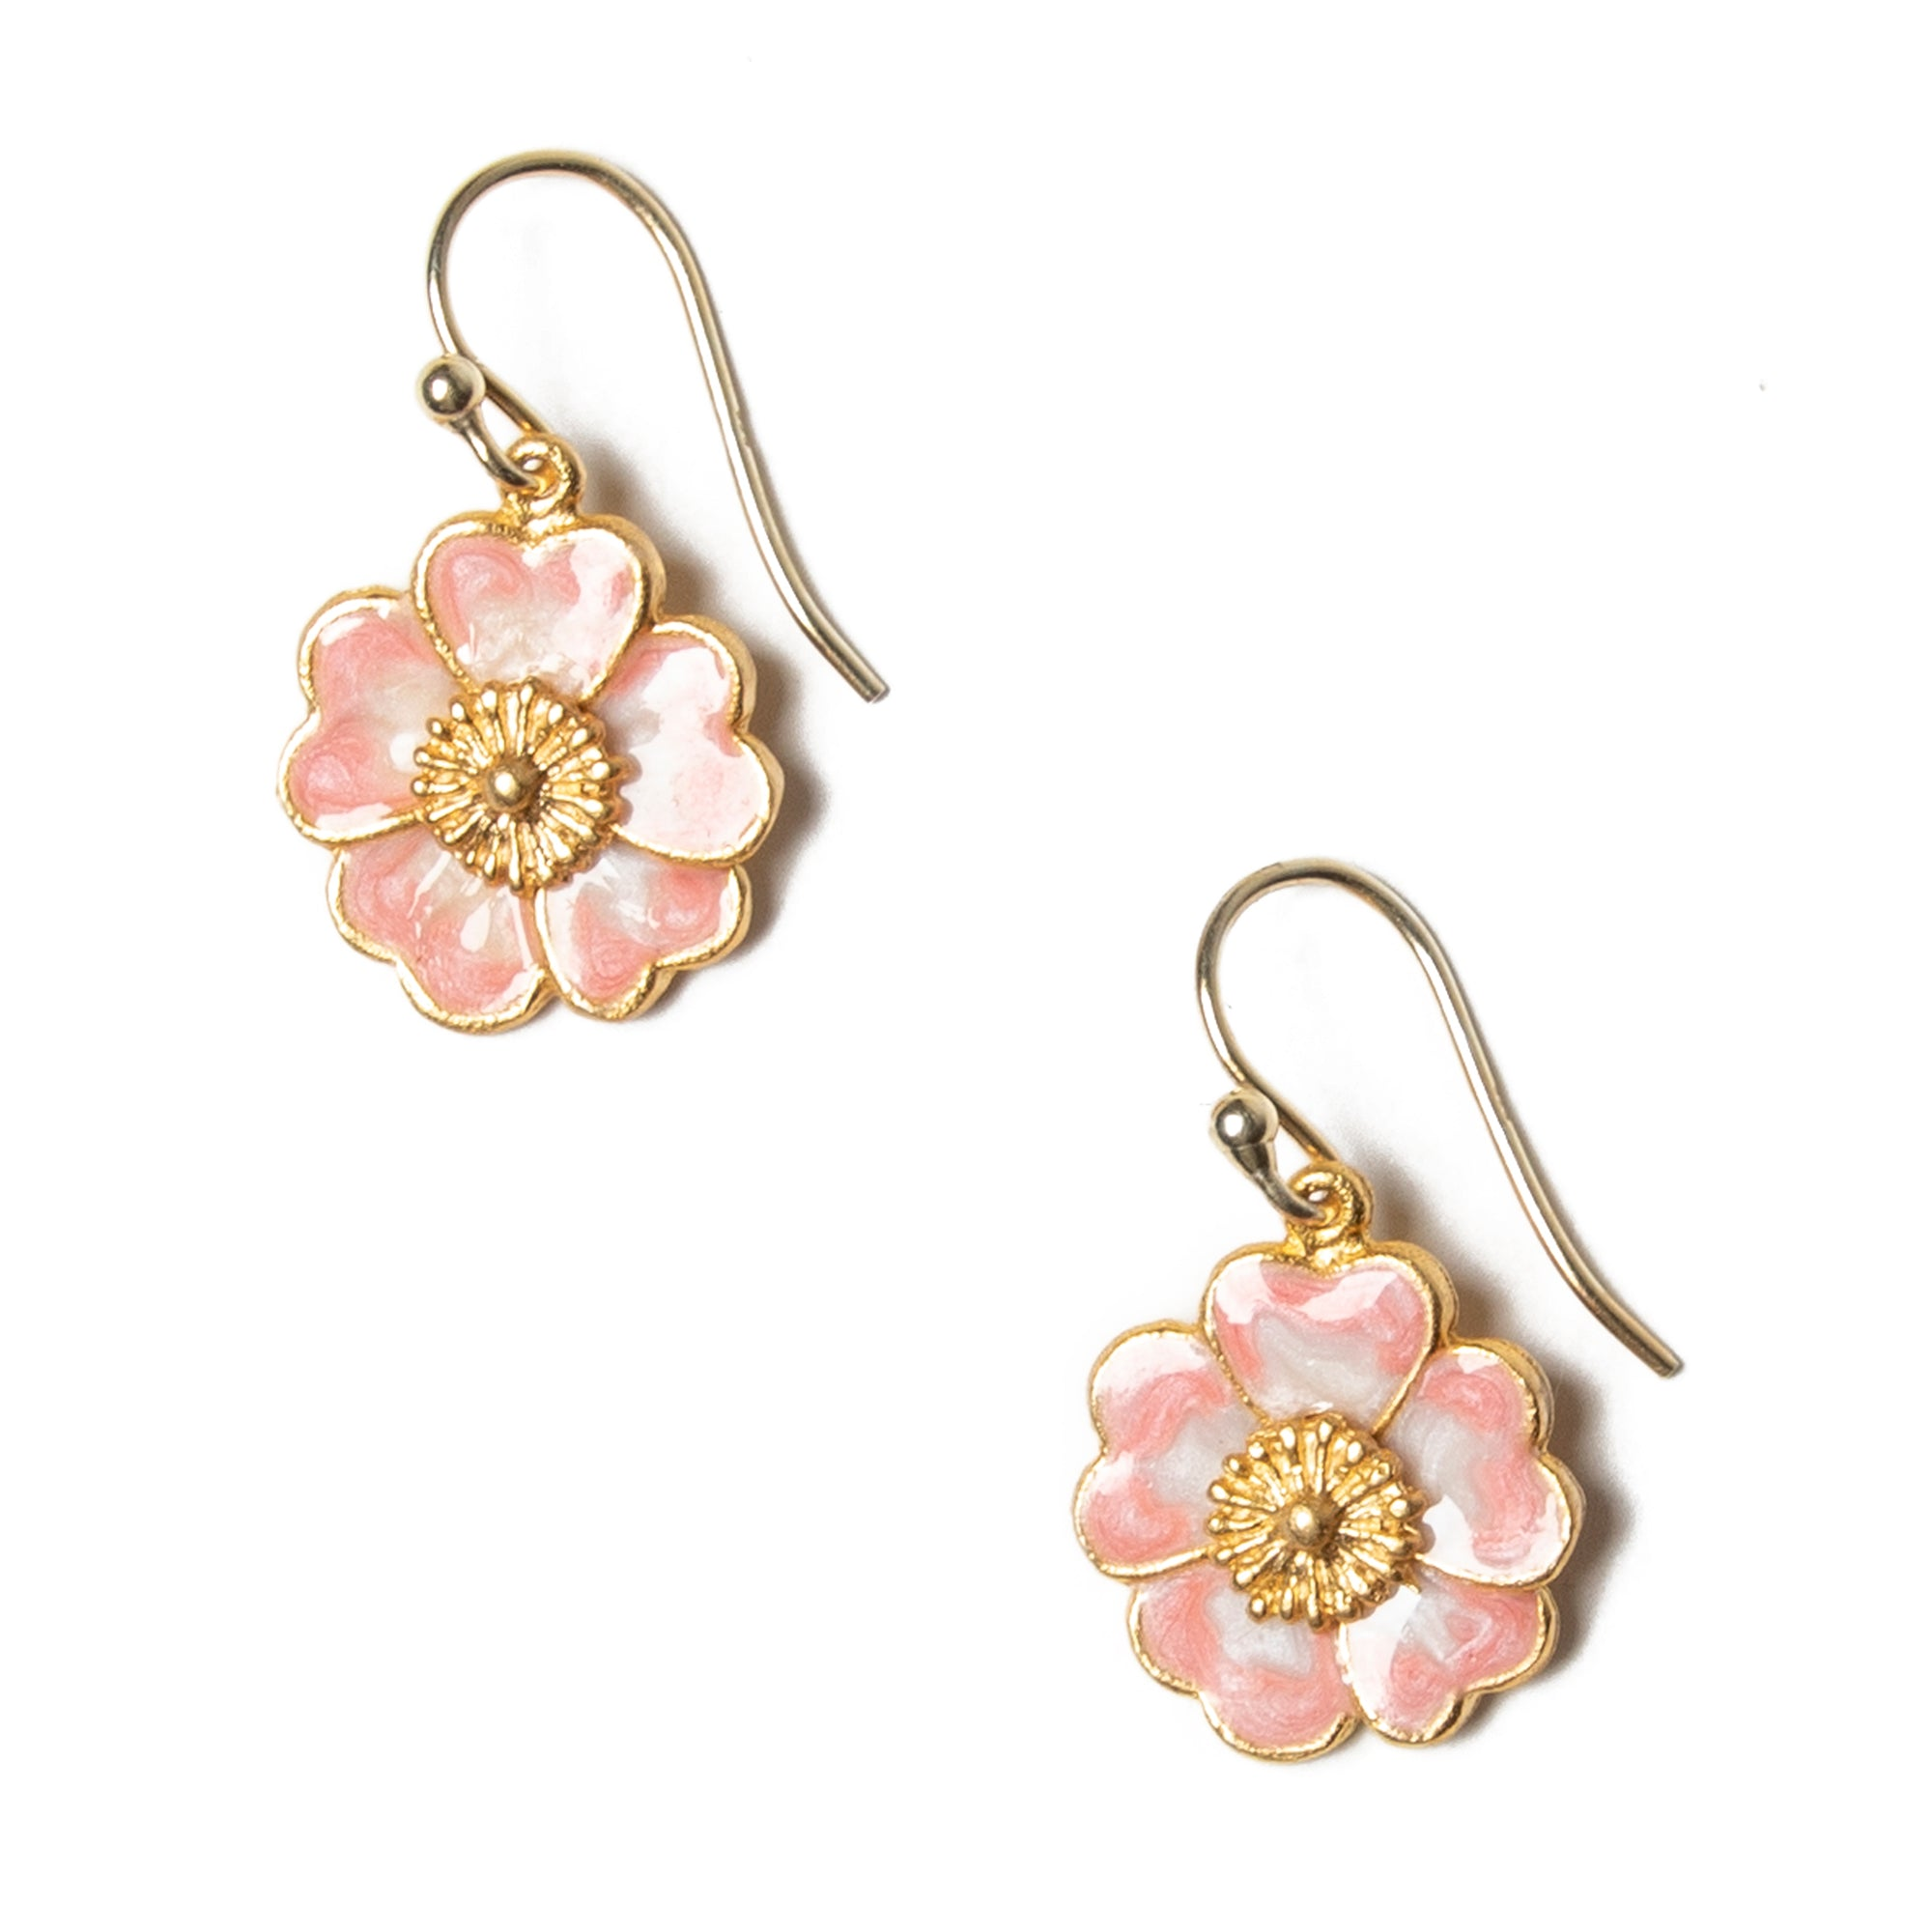 Manet Blossom Earrings